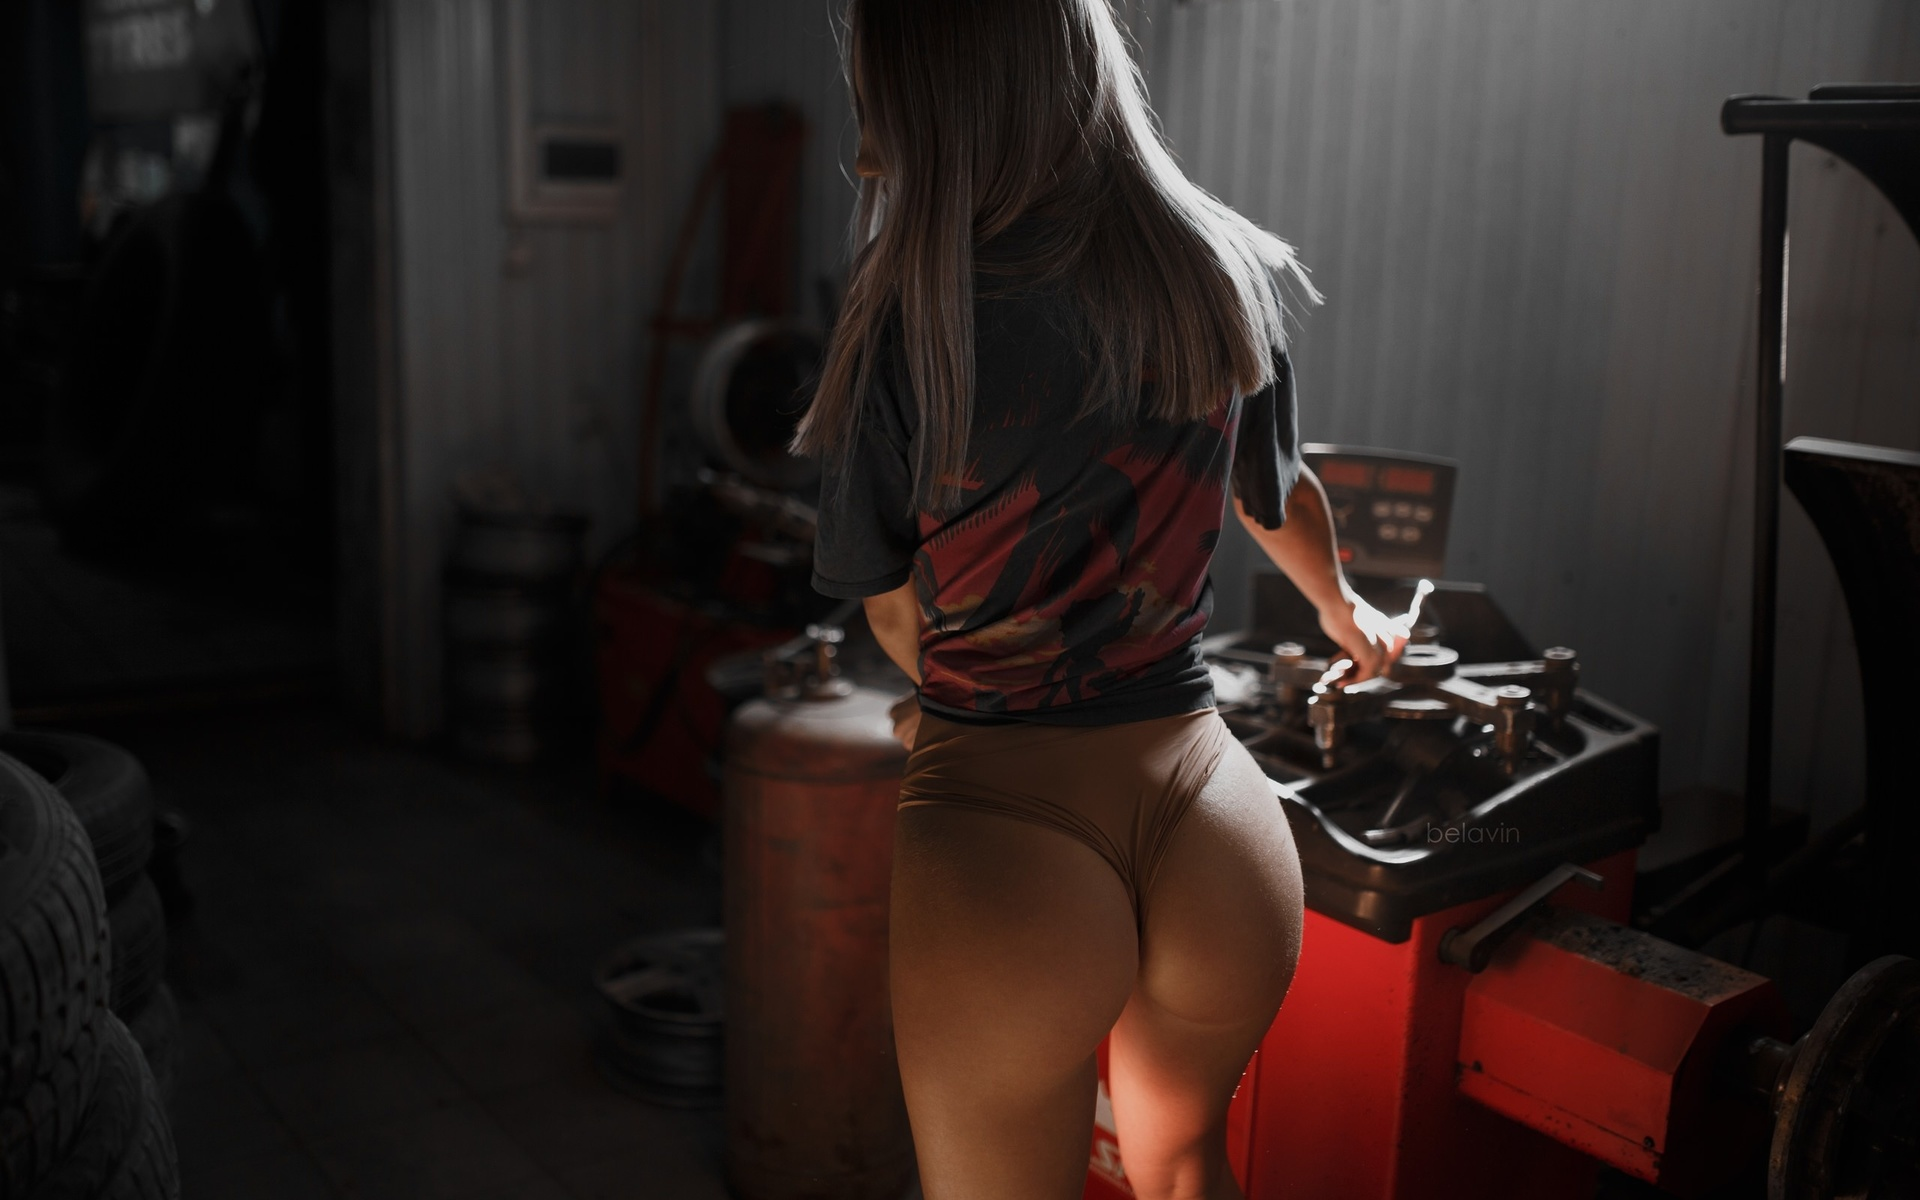 women, alexander belavin, panties, t-shirt, tires, workshop, ass, back, women indoors, brunette